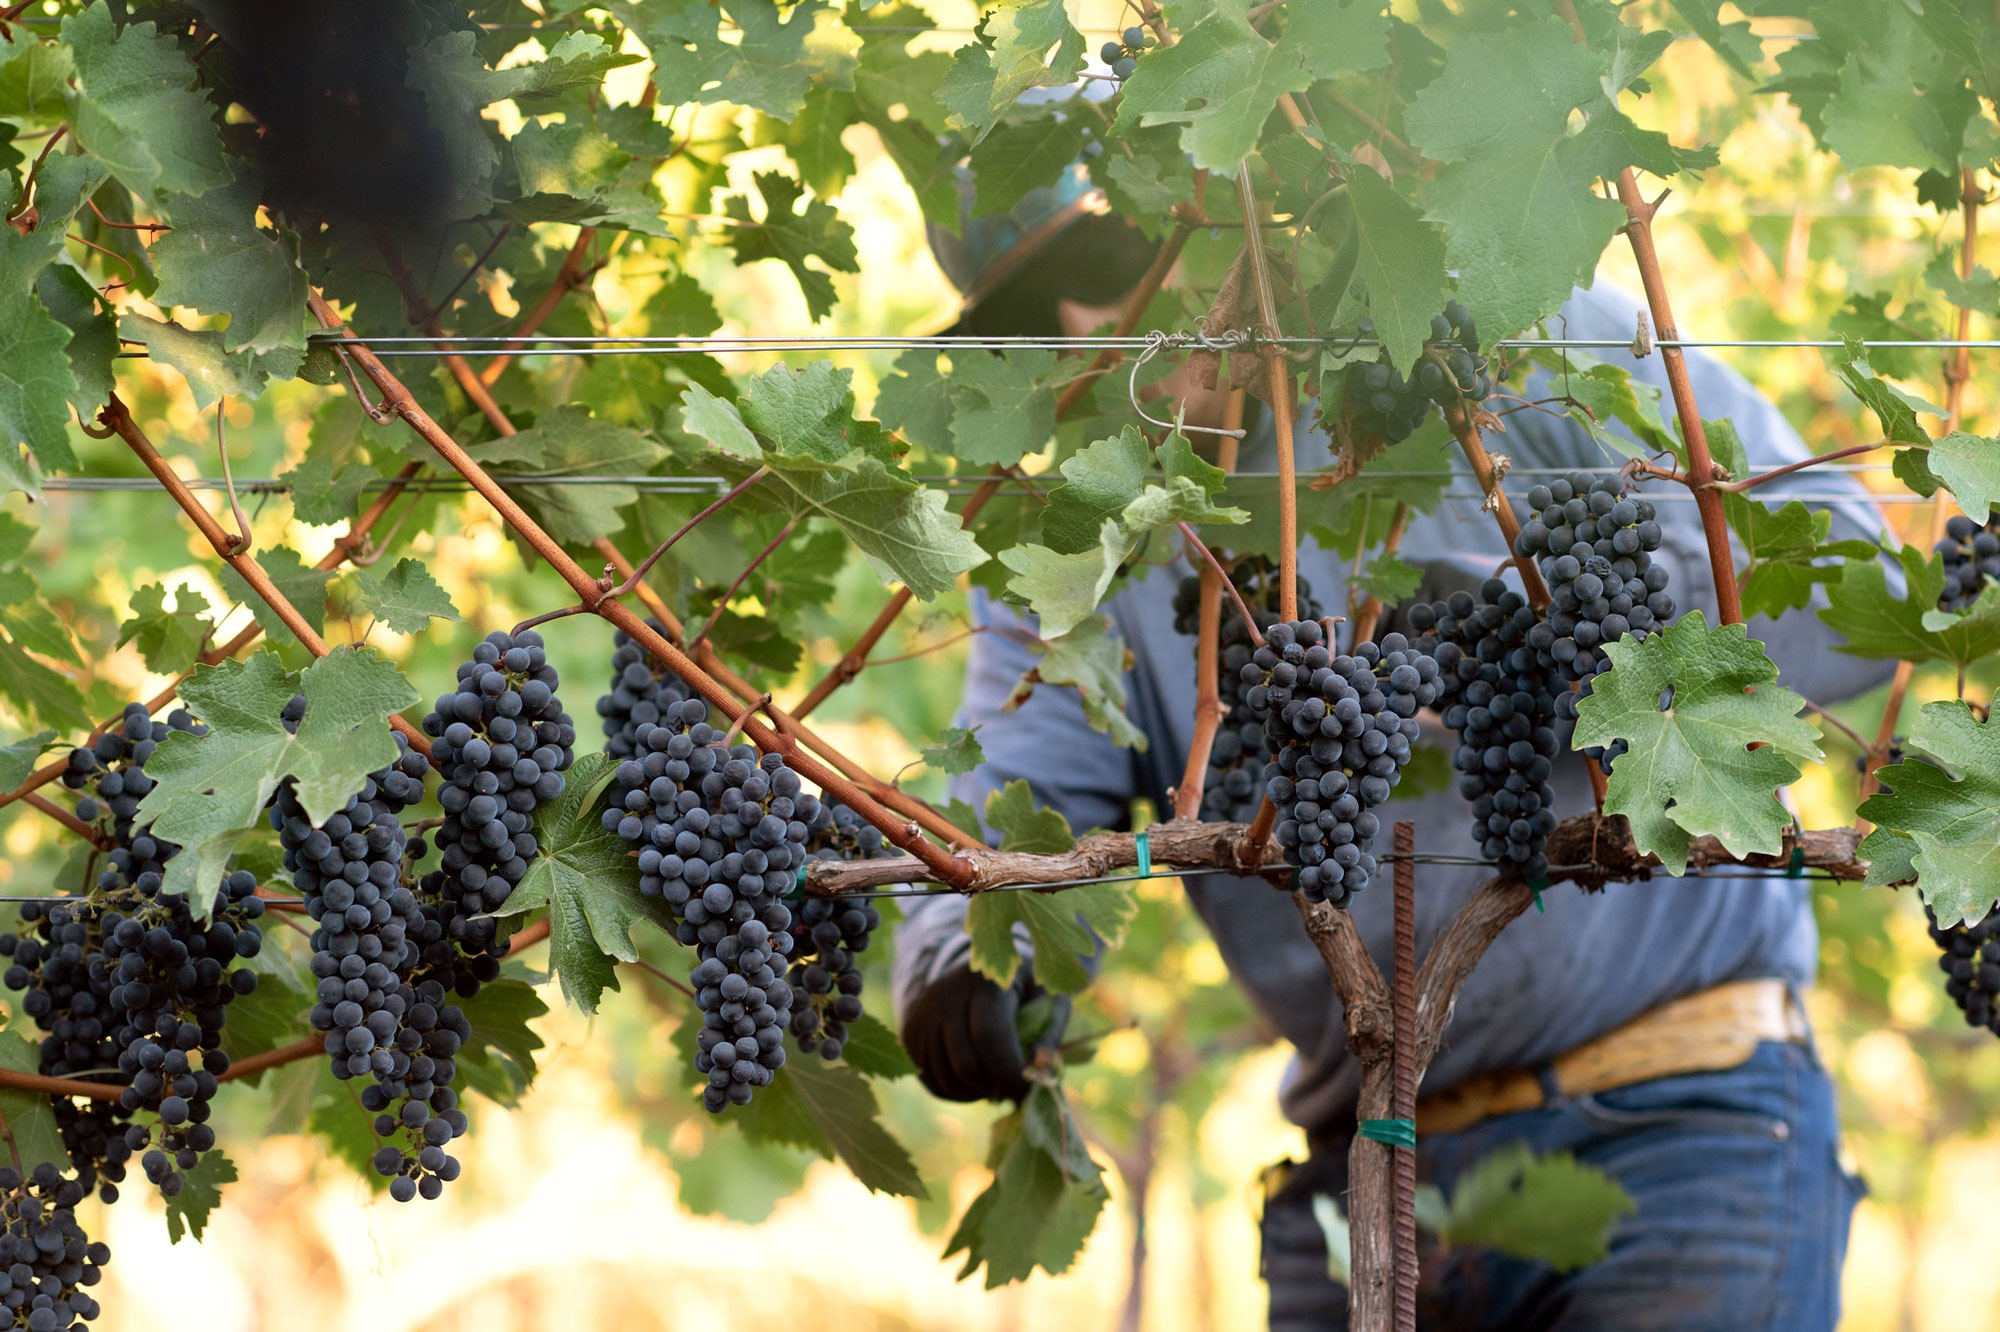 Harvesting grapes at M-Bar Ranch. Photo by JH Hayes